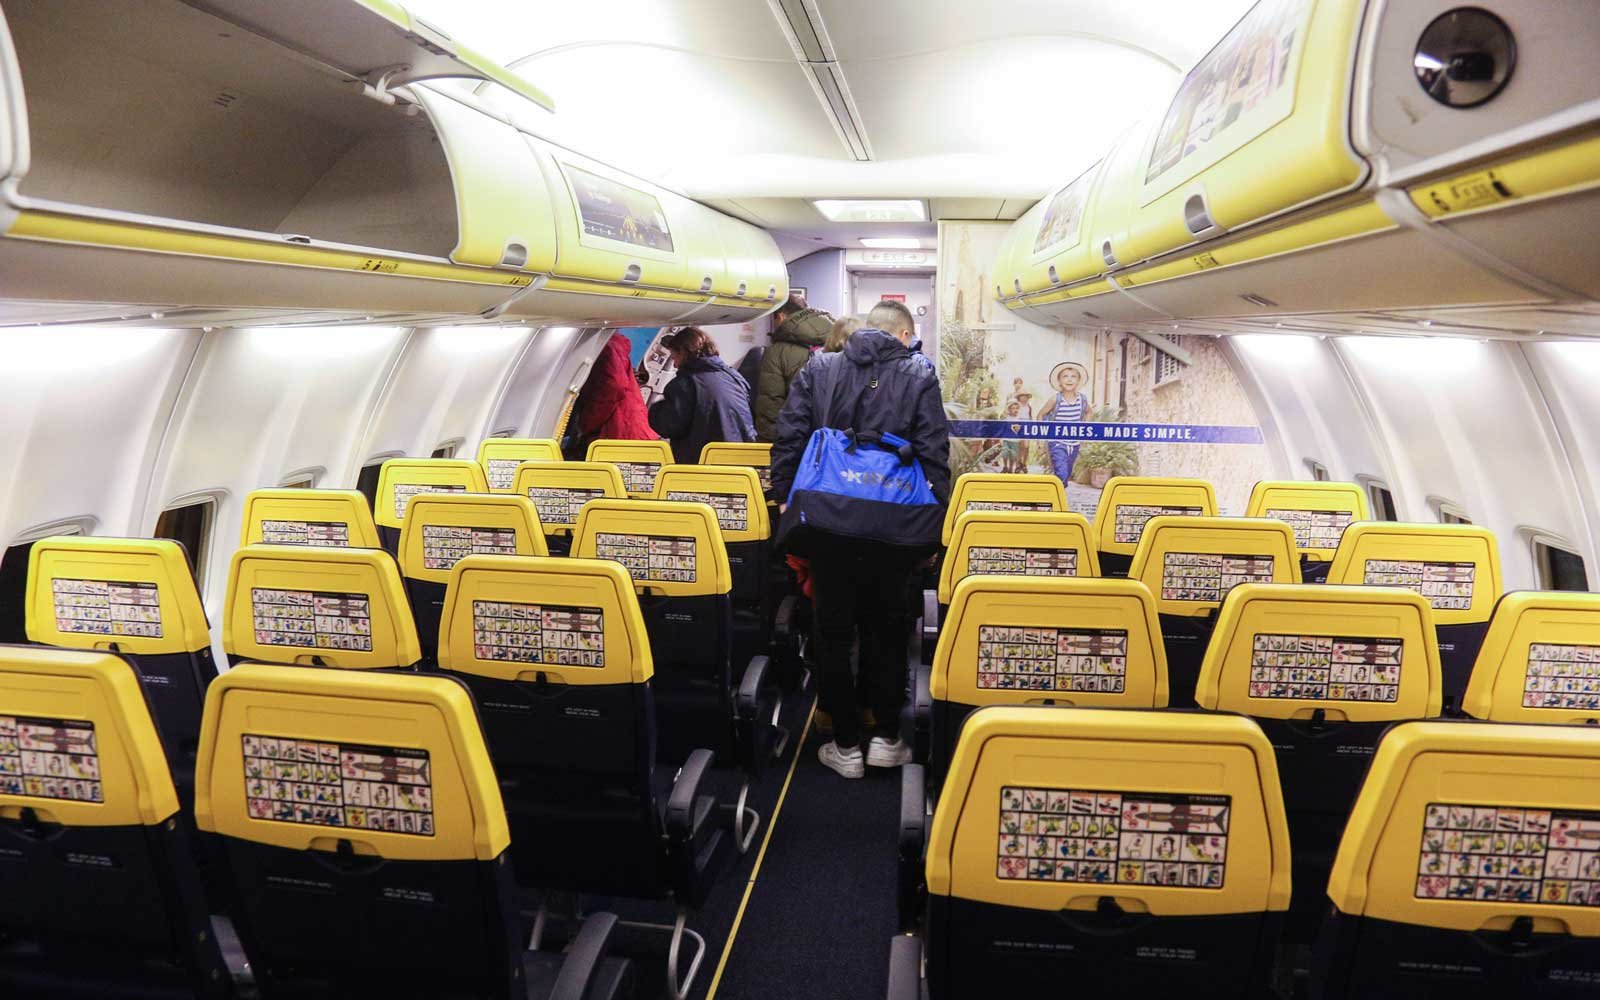 Changes to Ryanair's baggage system come into place tomorrow